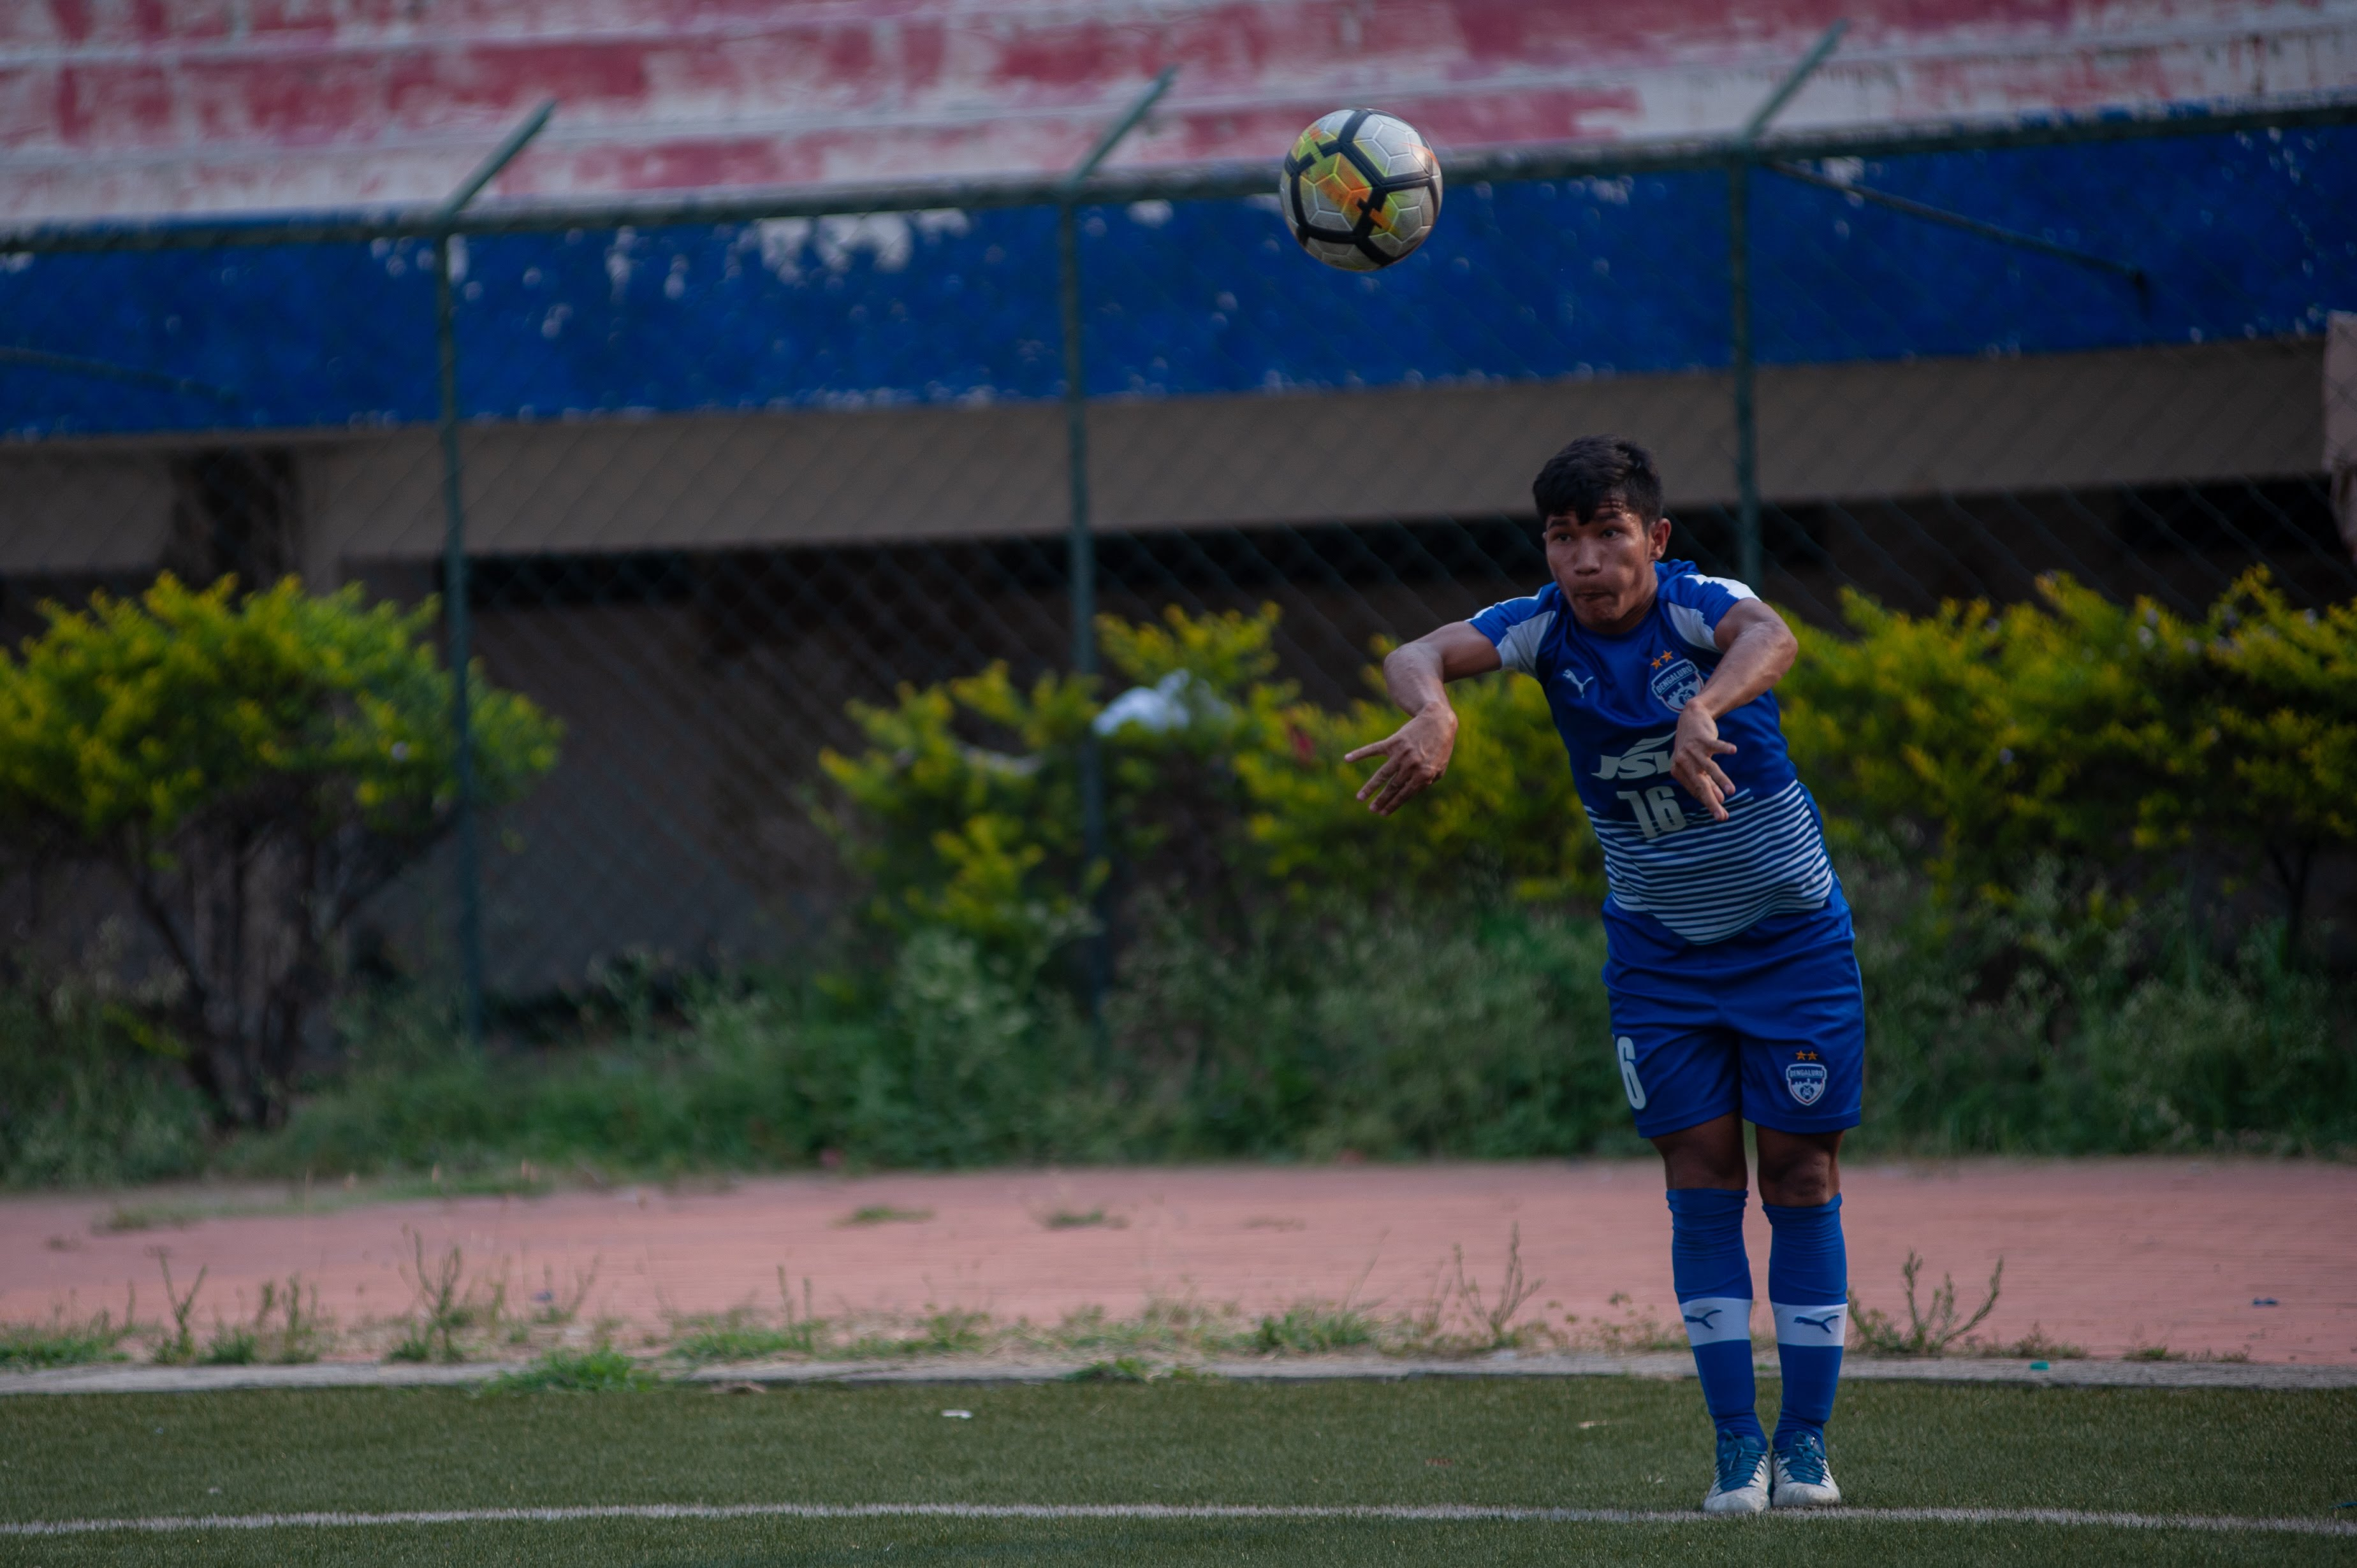 A Bengaluru FC players takes a quick throw in